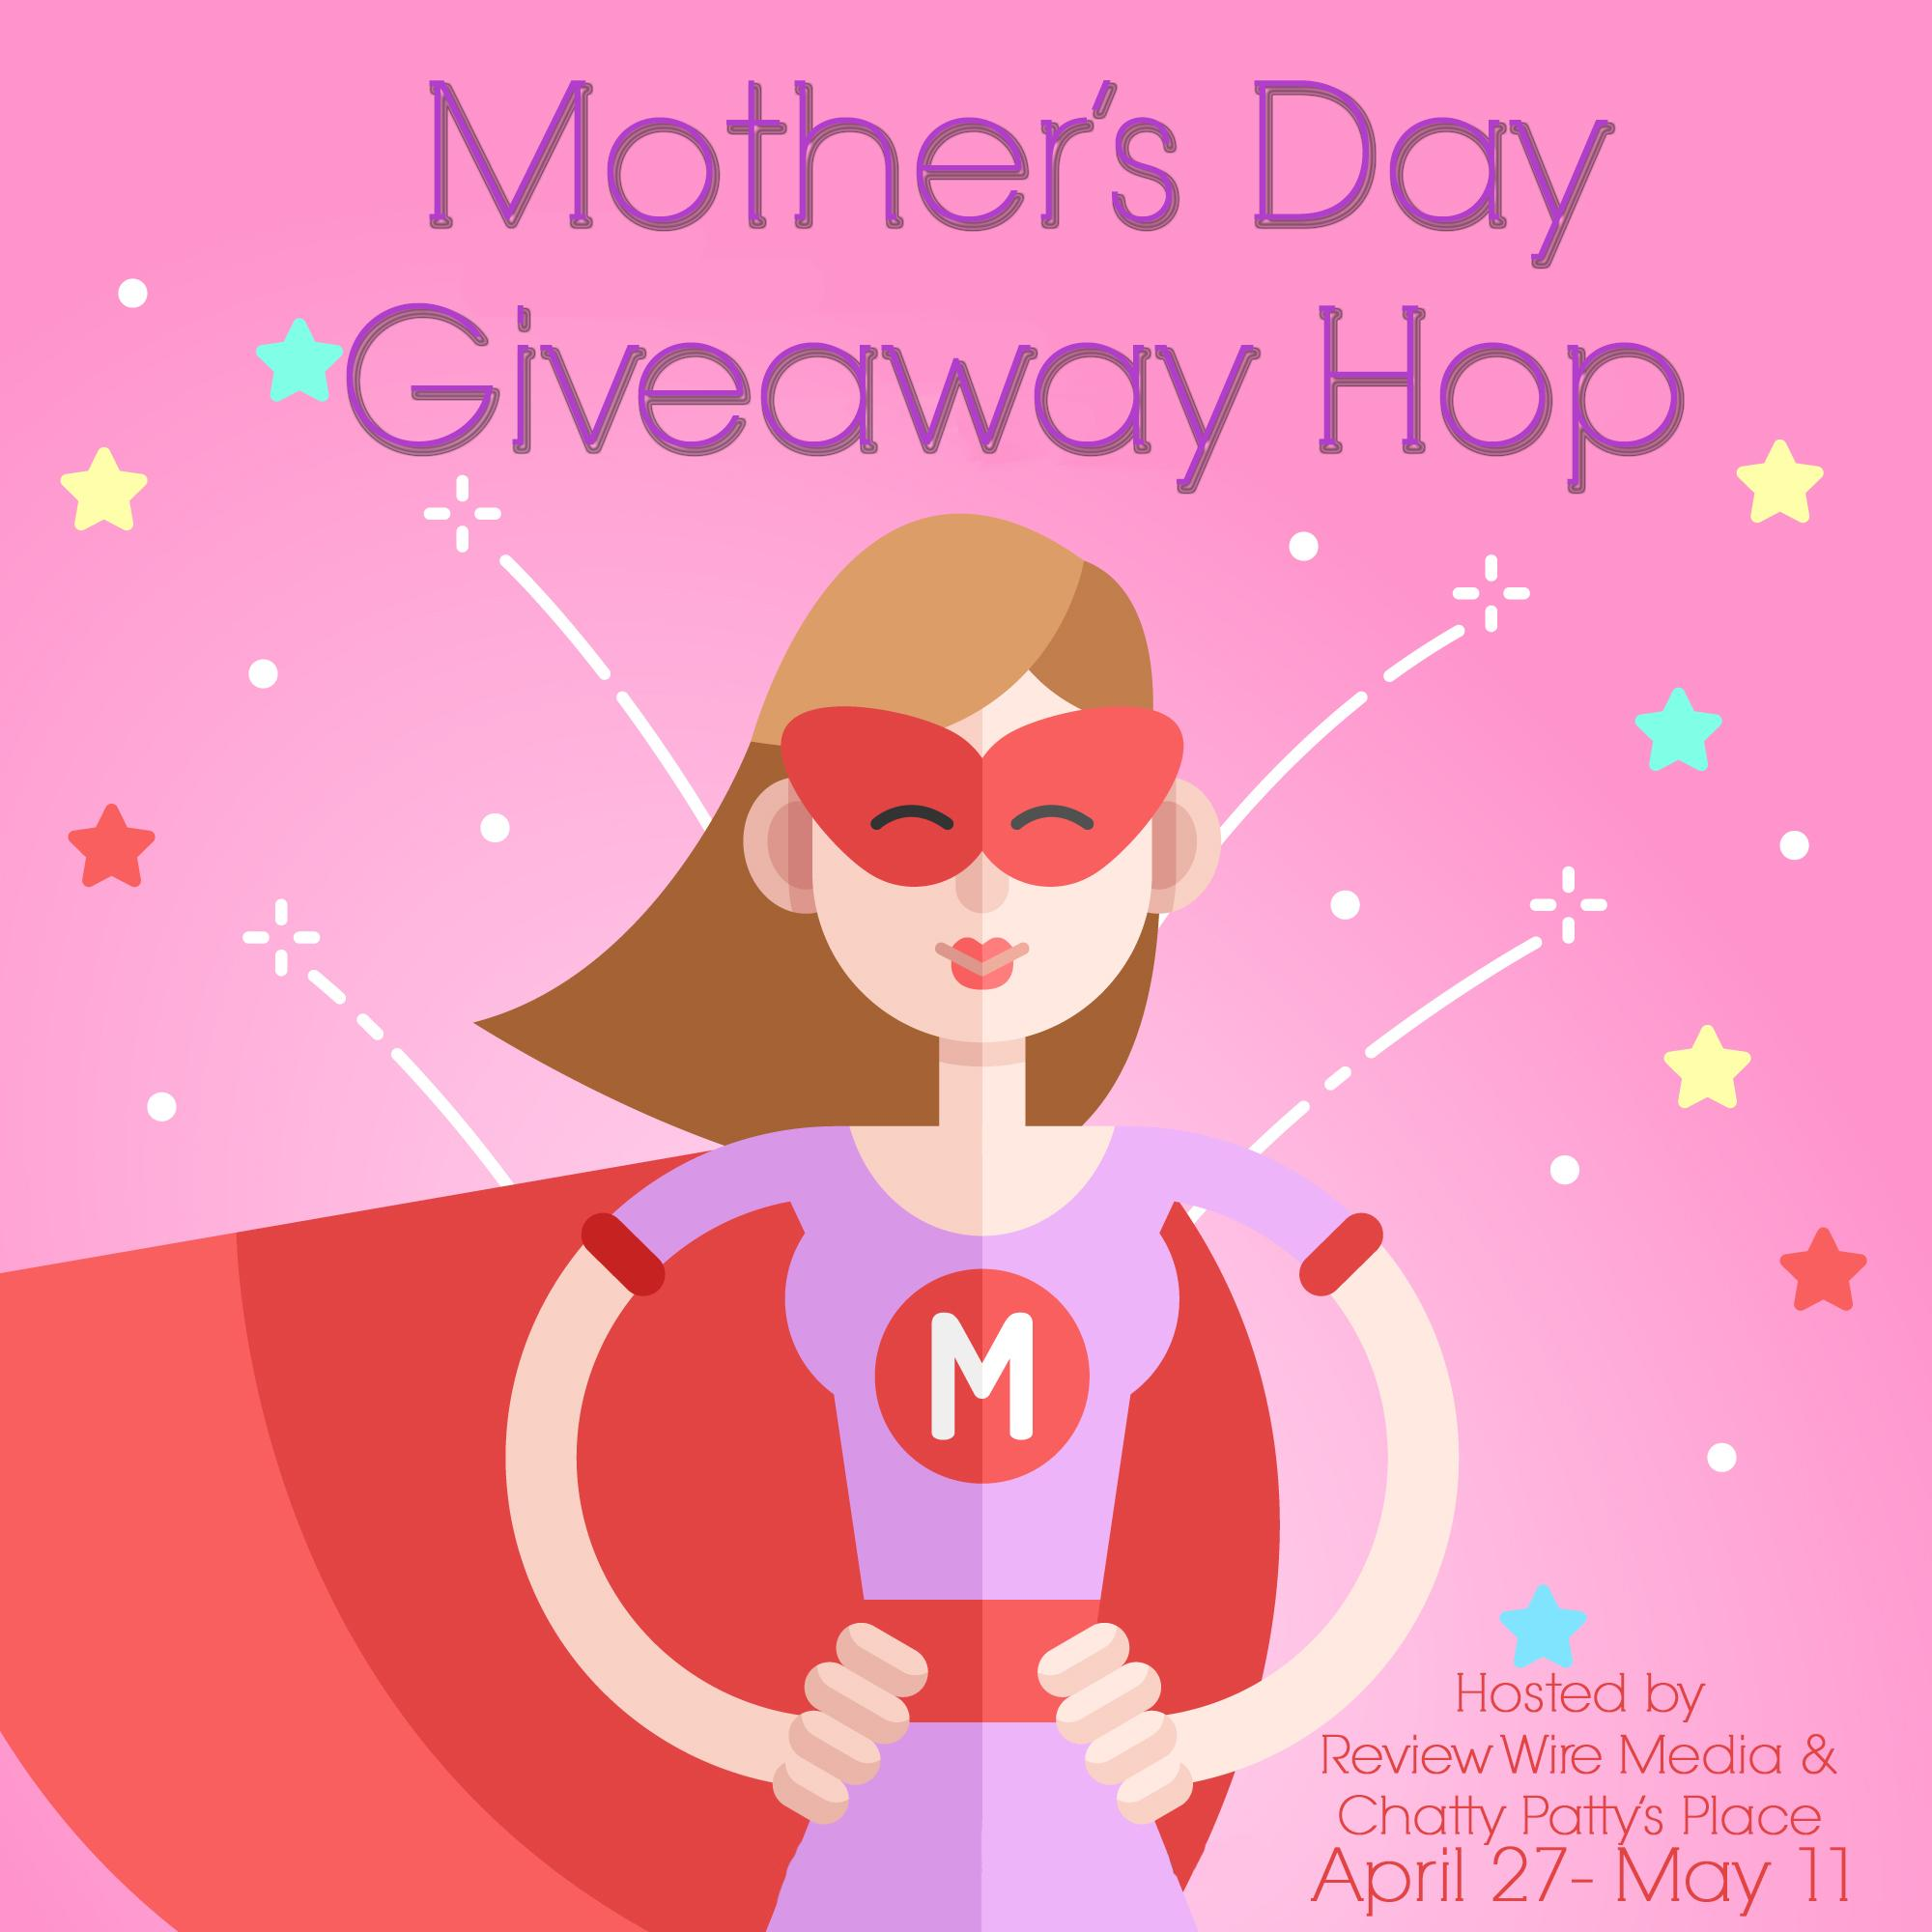 Mother's Day Giveaway Hop 2018